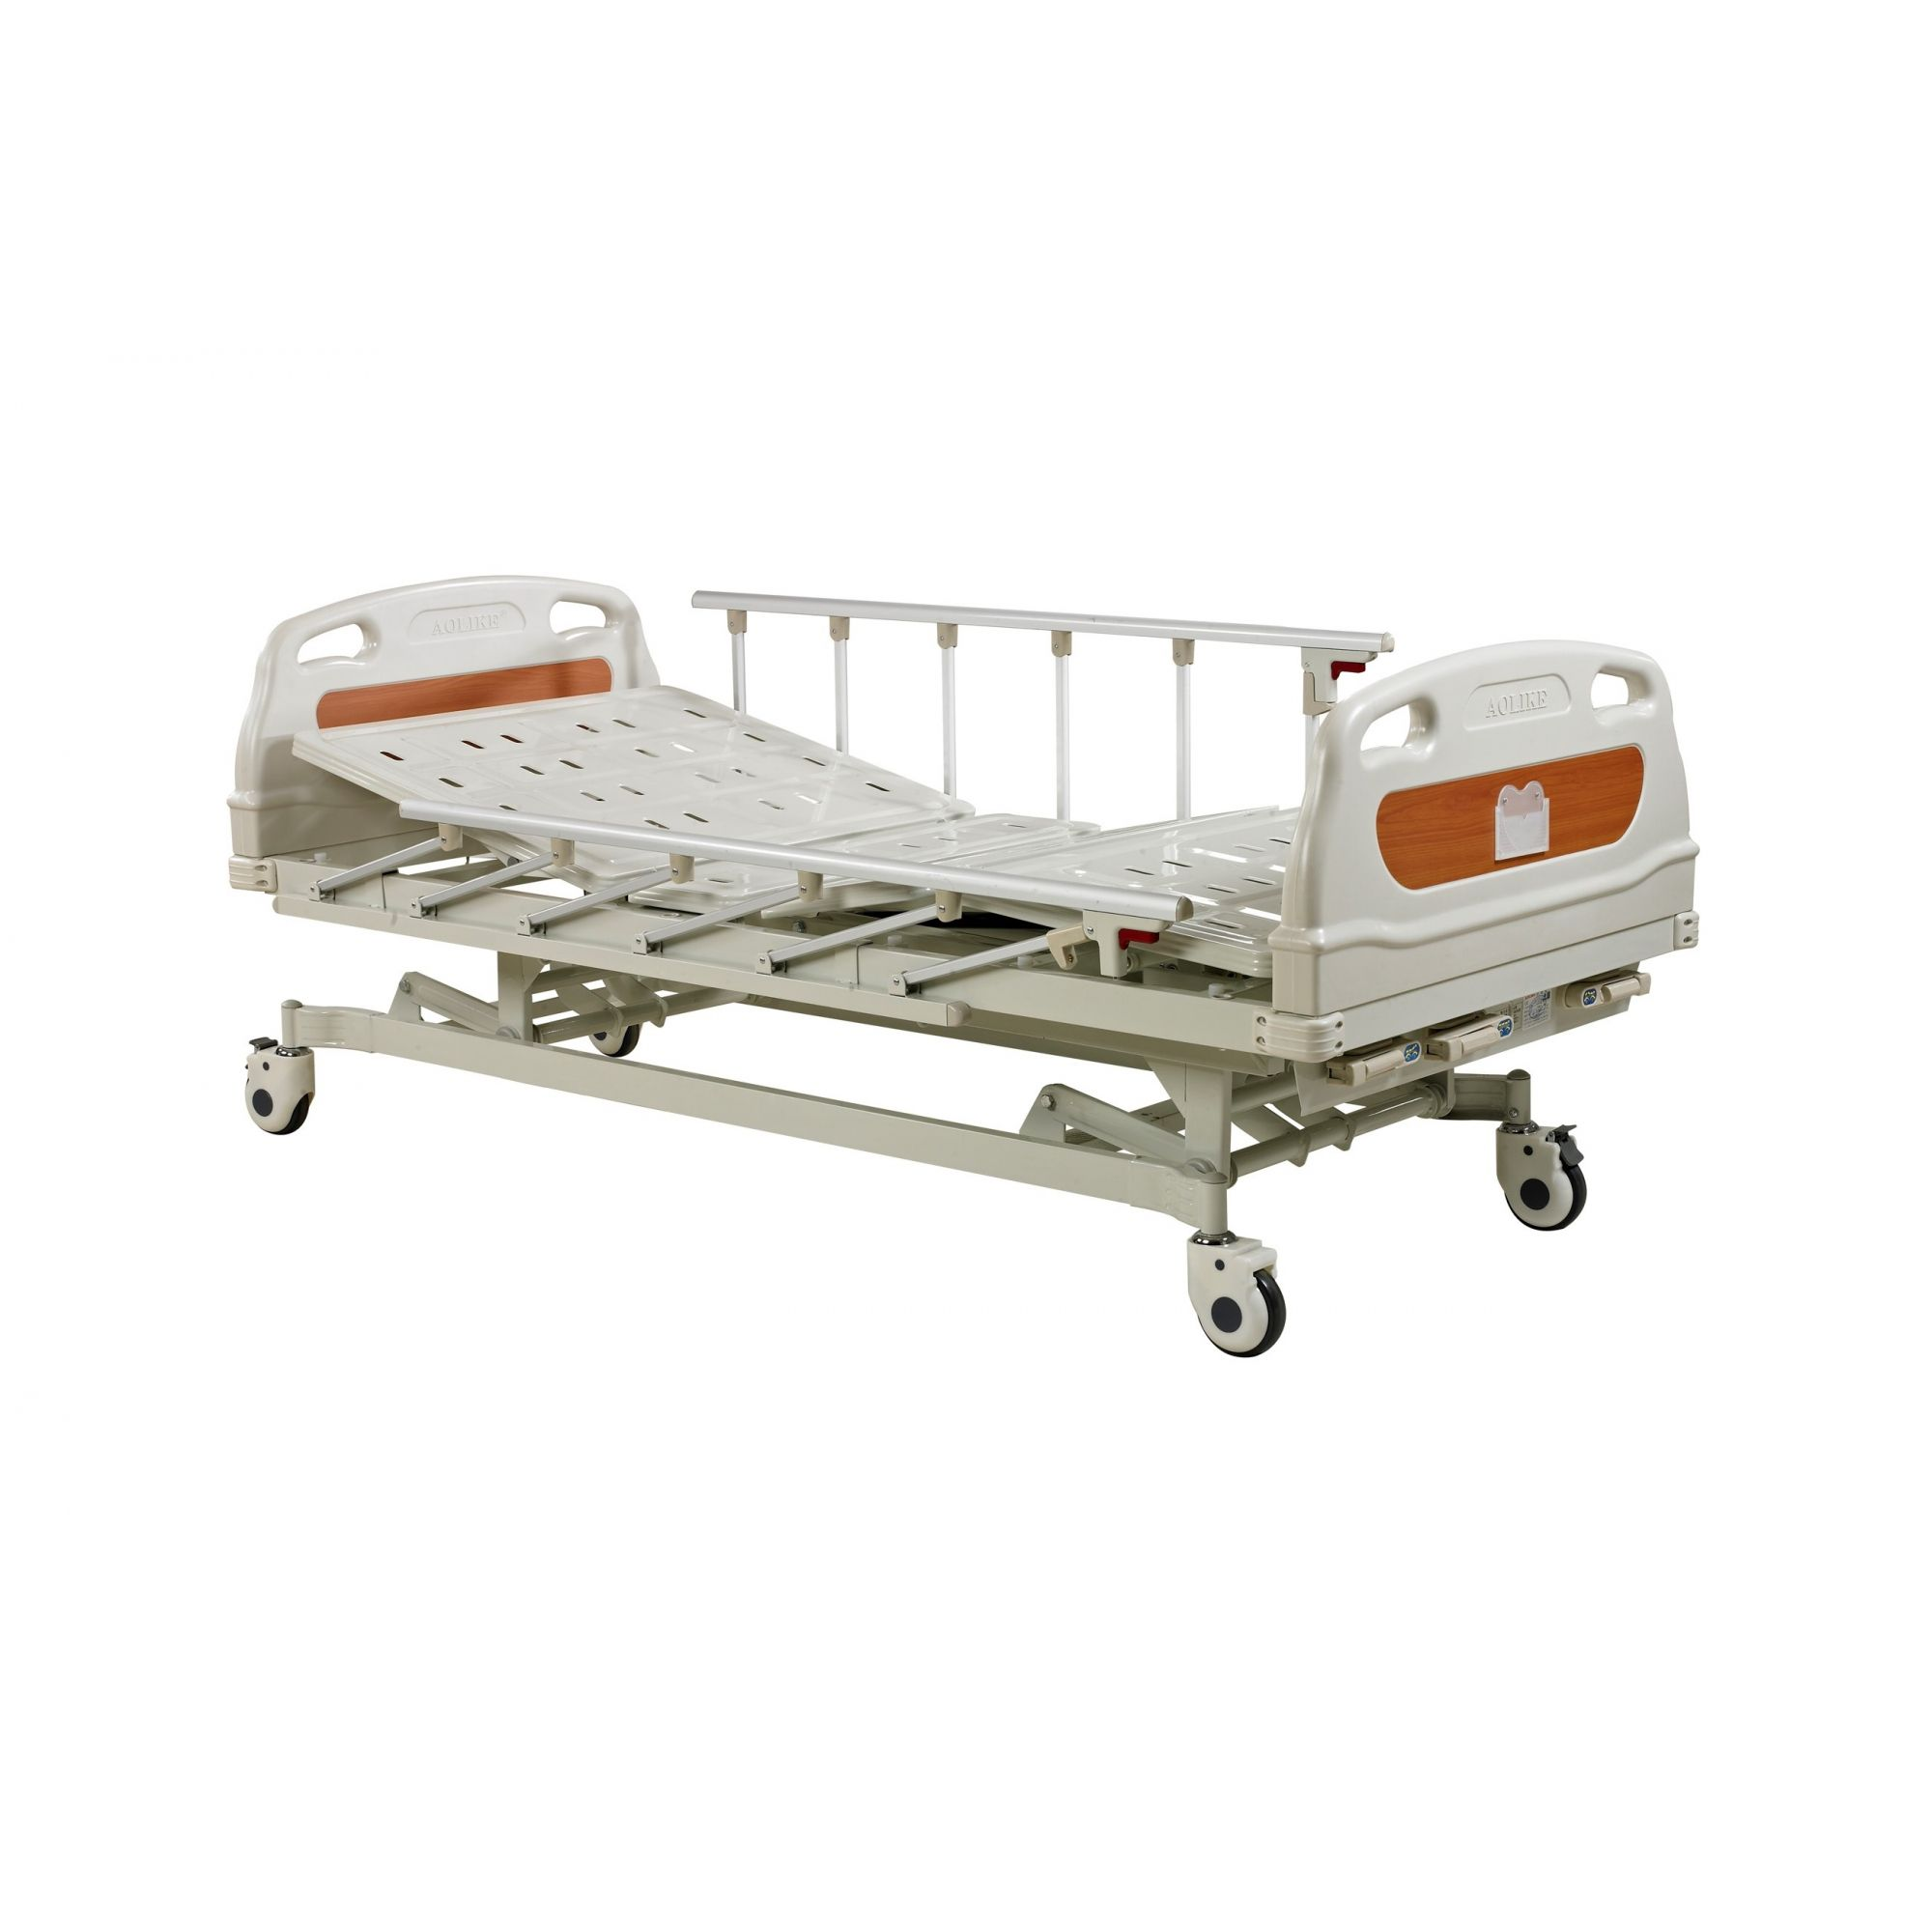 Cama Hospitalar Manual 3 movimentos ALK06 A328P